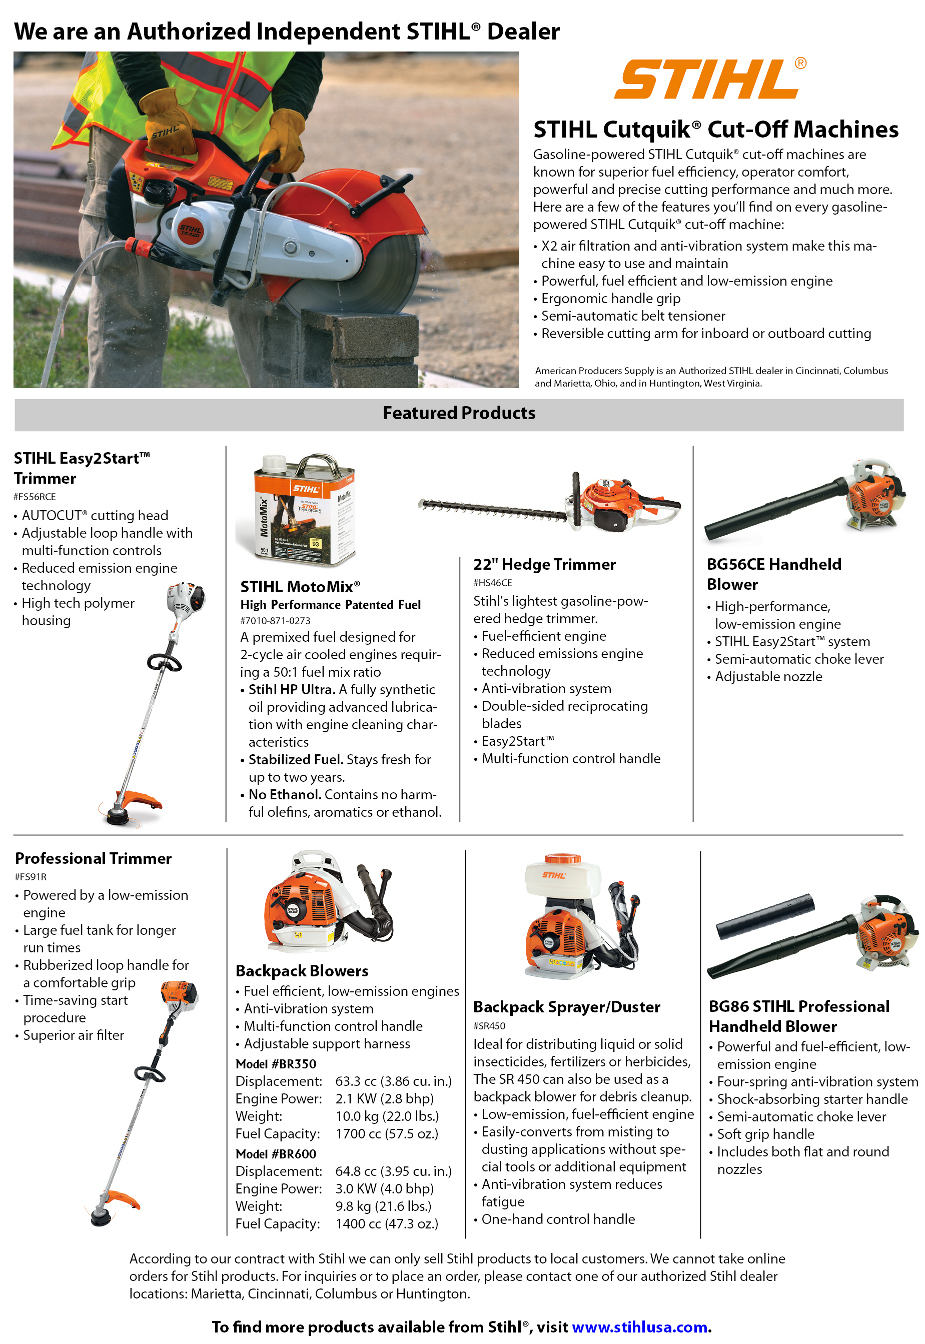 Stihl - The right tool for the job!